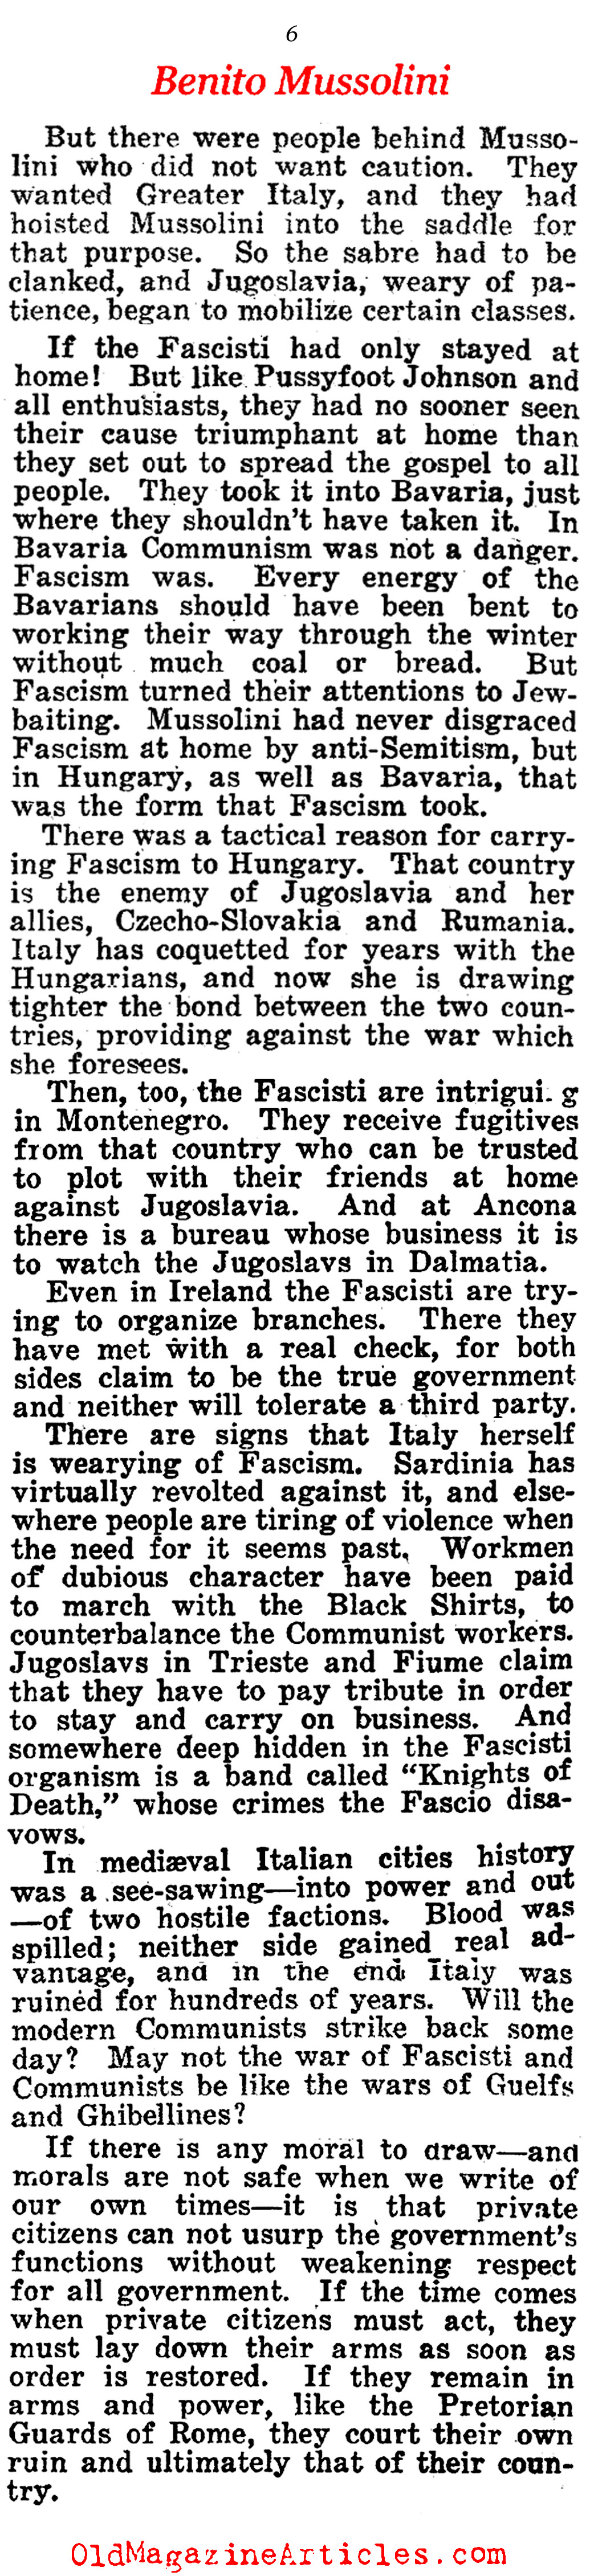 Benito Mussolini And His Followers  (American Legion Weekly, 1923)